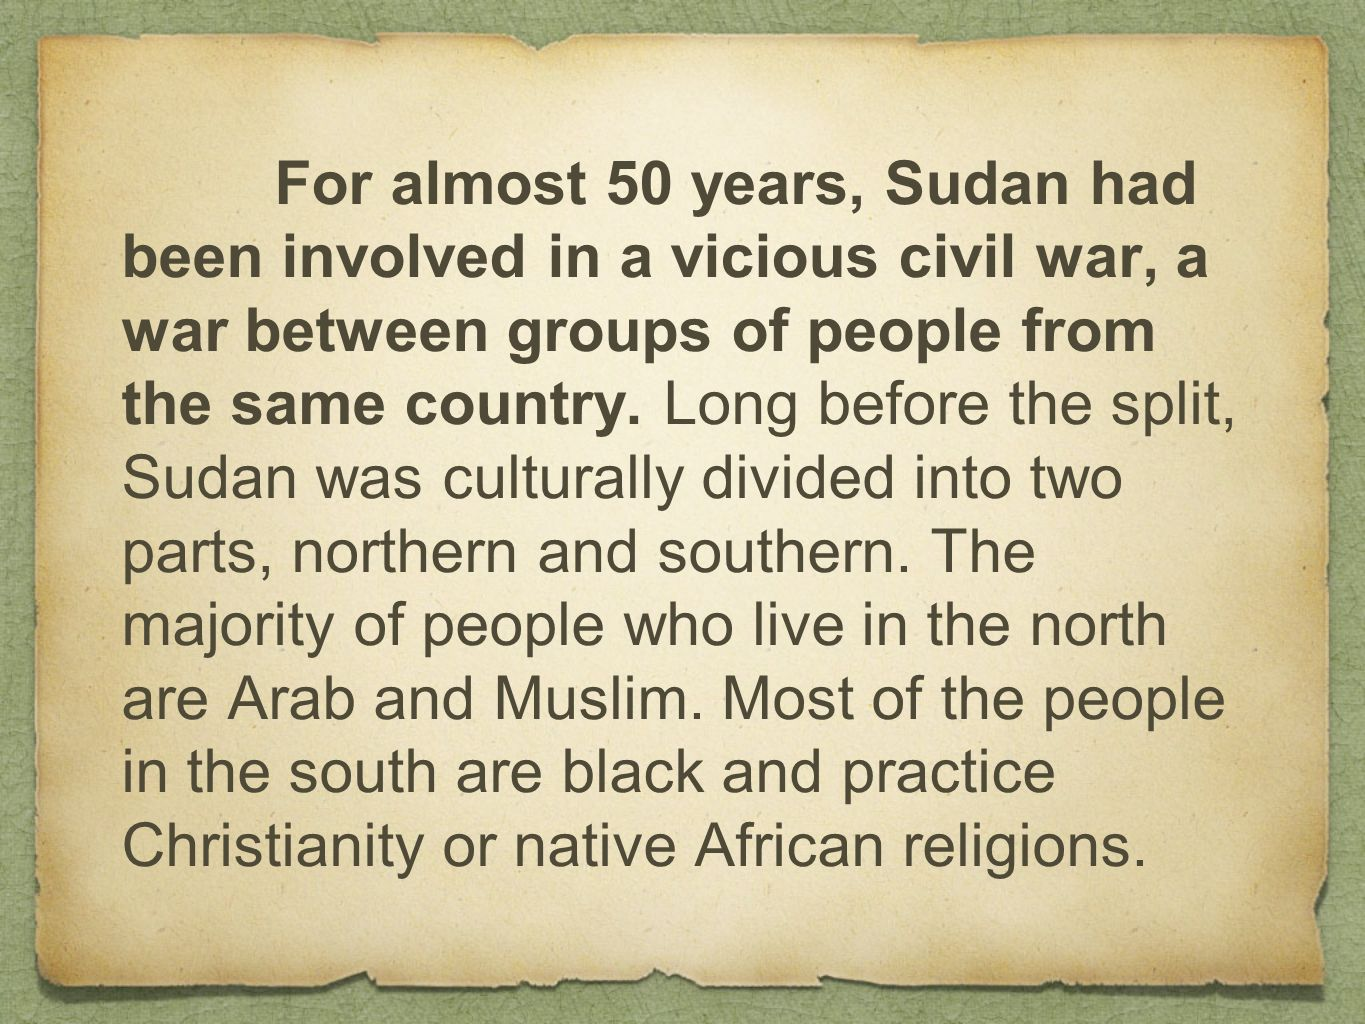 For almost 50 years, Sudan had been involved in a vicious civil war, a war between groups of people from the same country. Long before the split, Suda